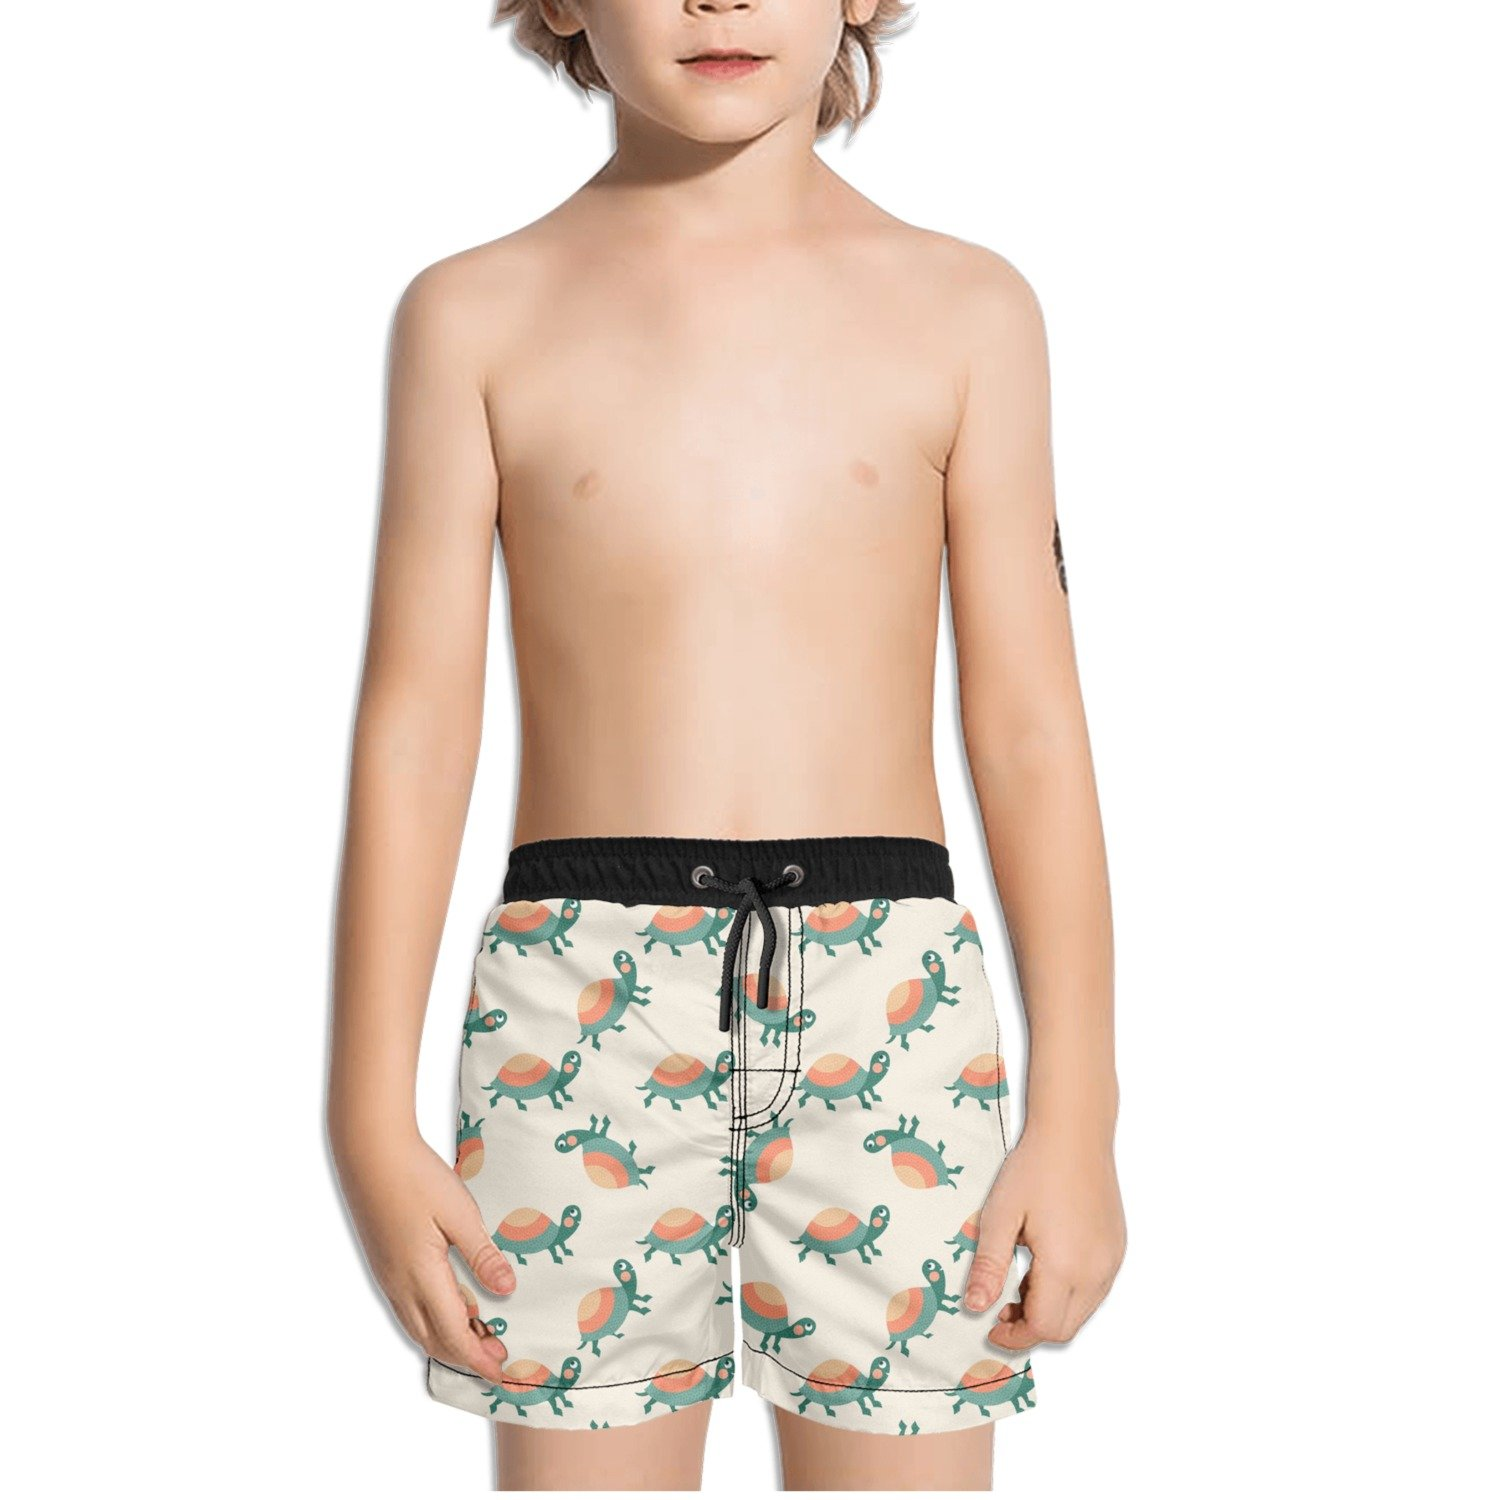 FullBo Cartoon Turtle Little Boys Short Swim Trunks Quick Dry Beach Shorts